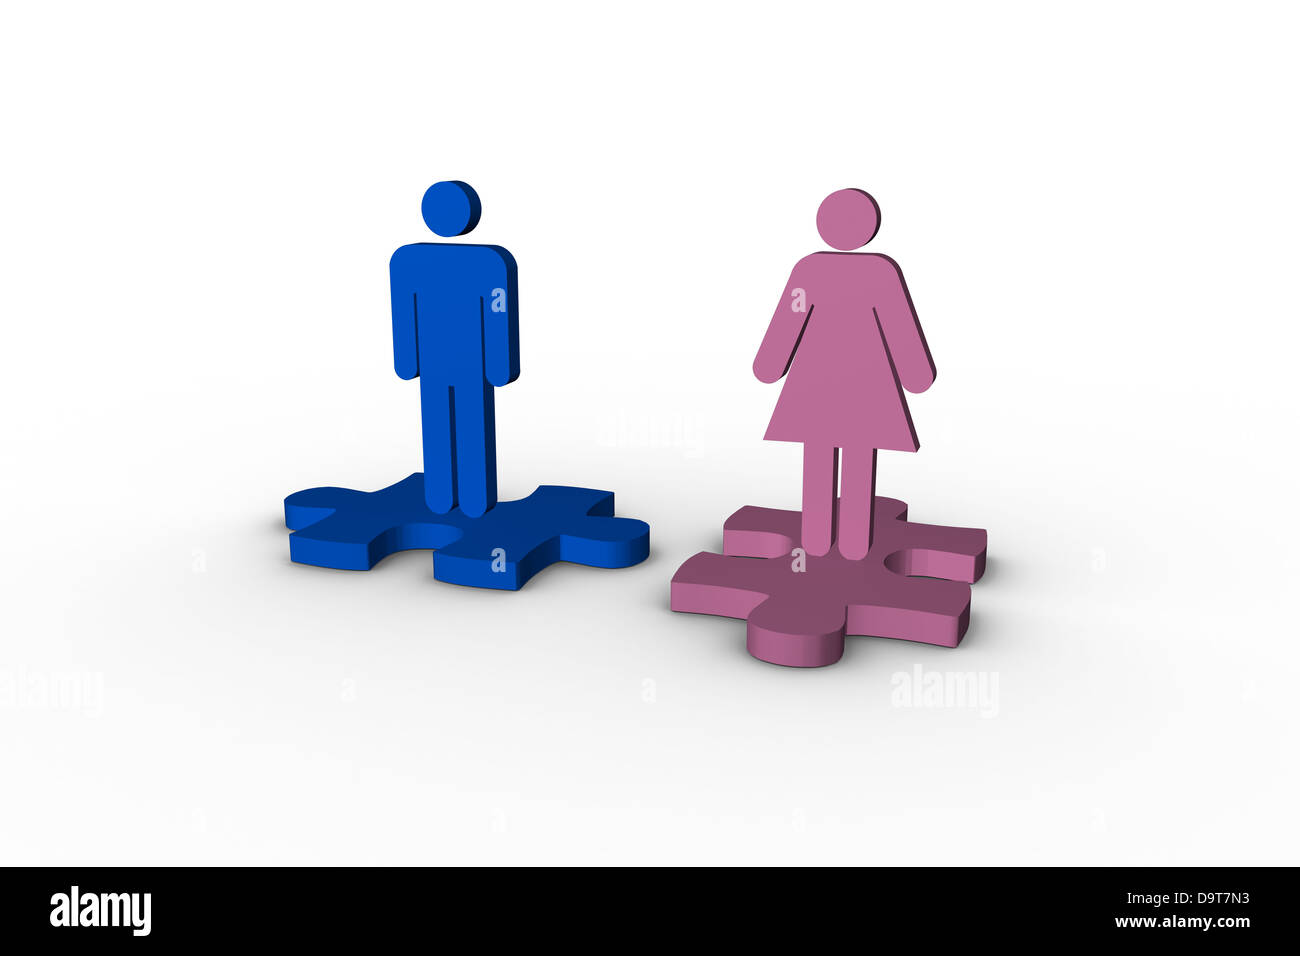 Blue and pink human figures over jigsaw pieces separated - Stock Image